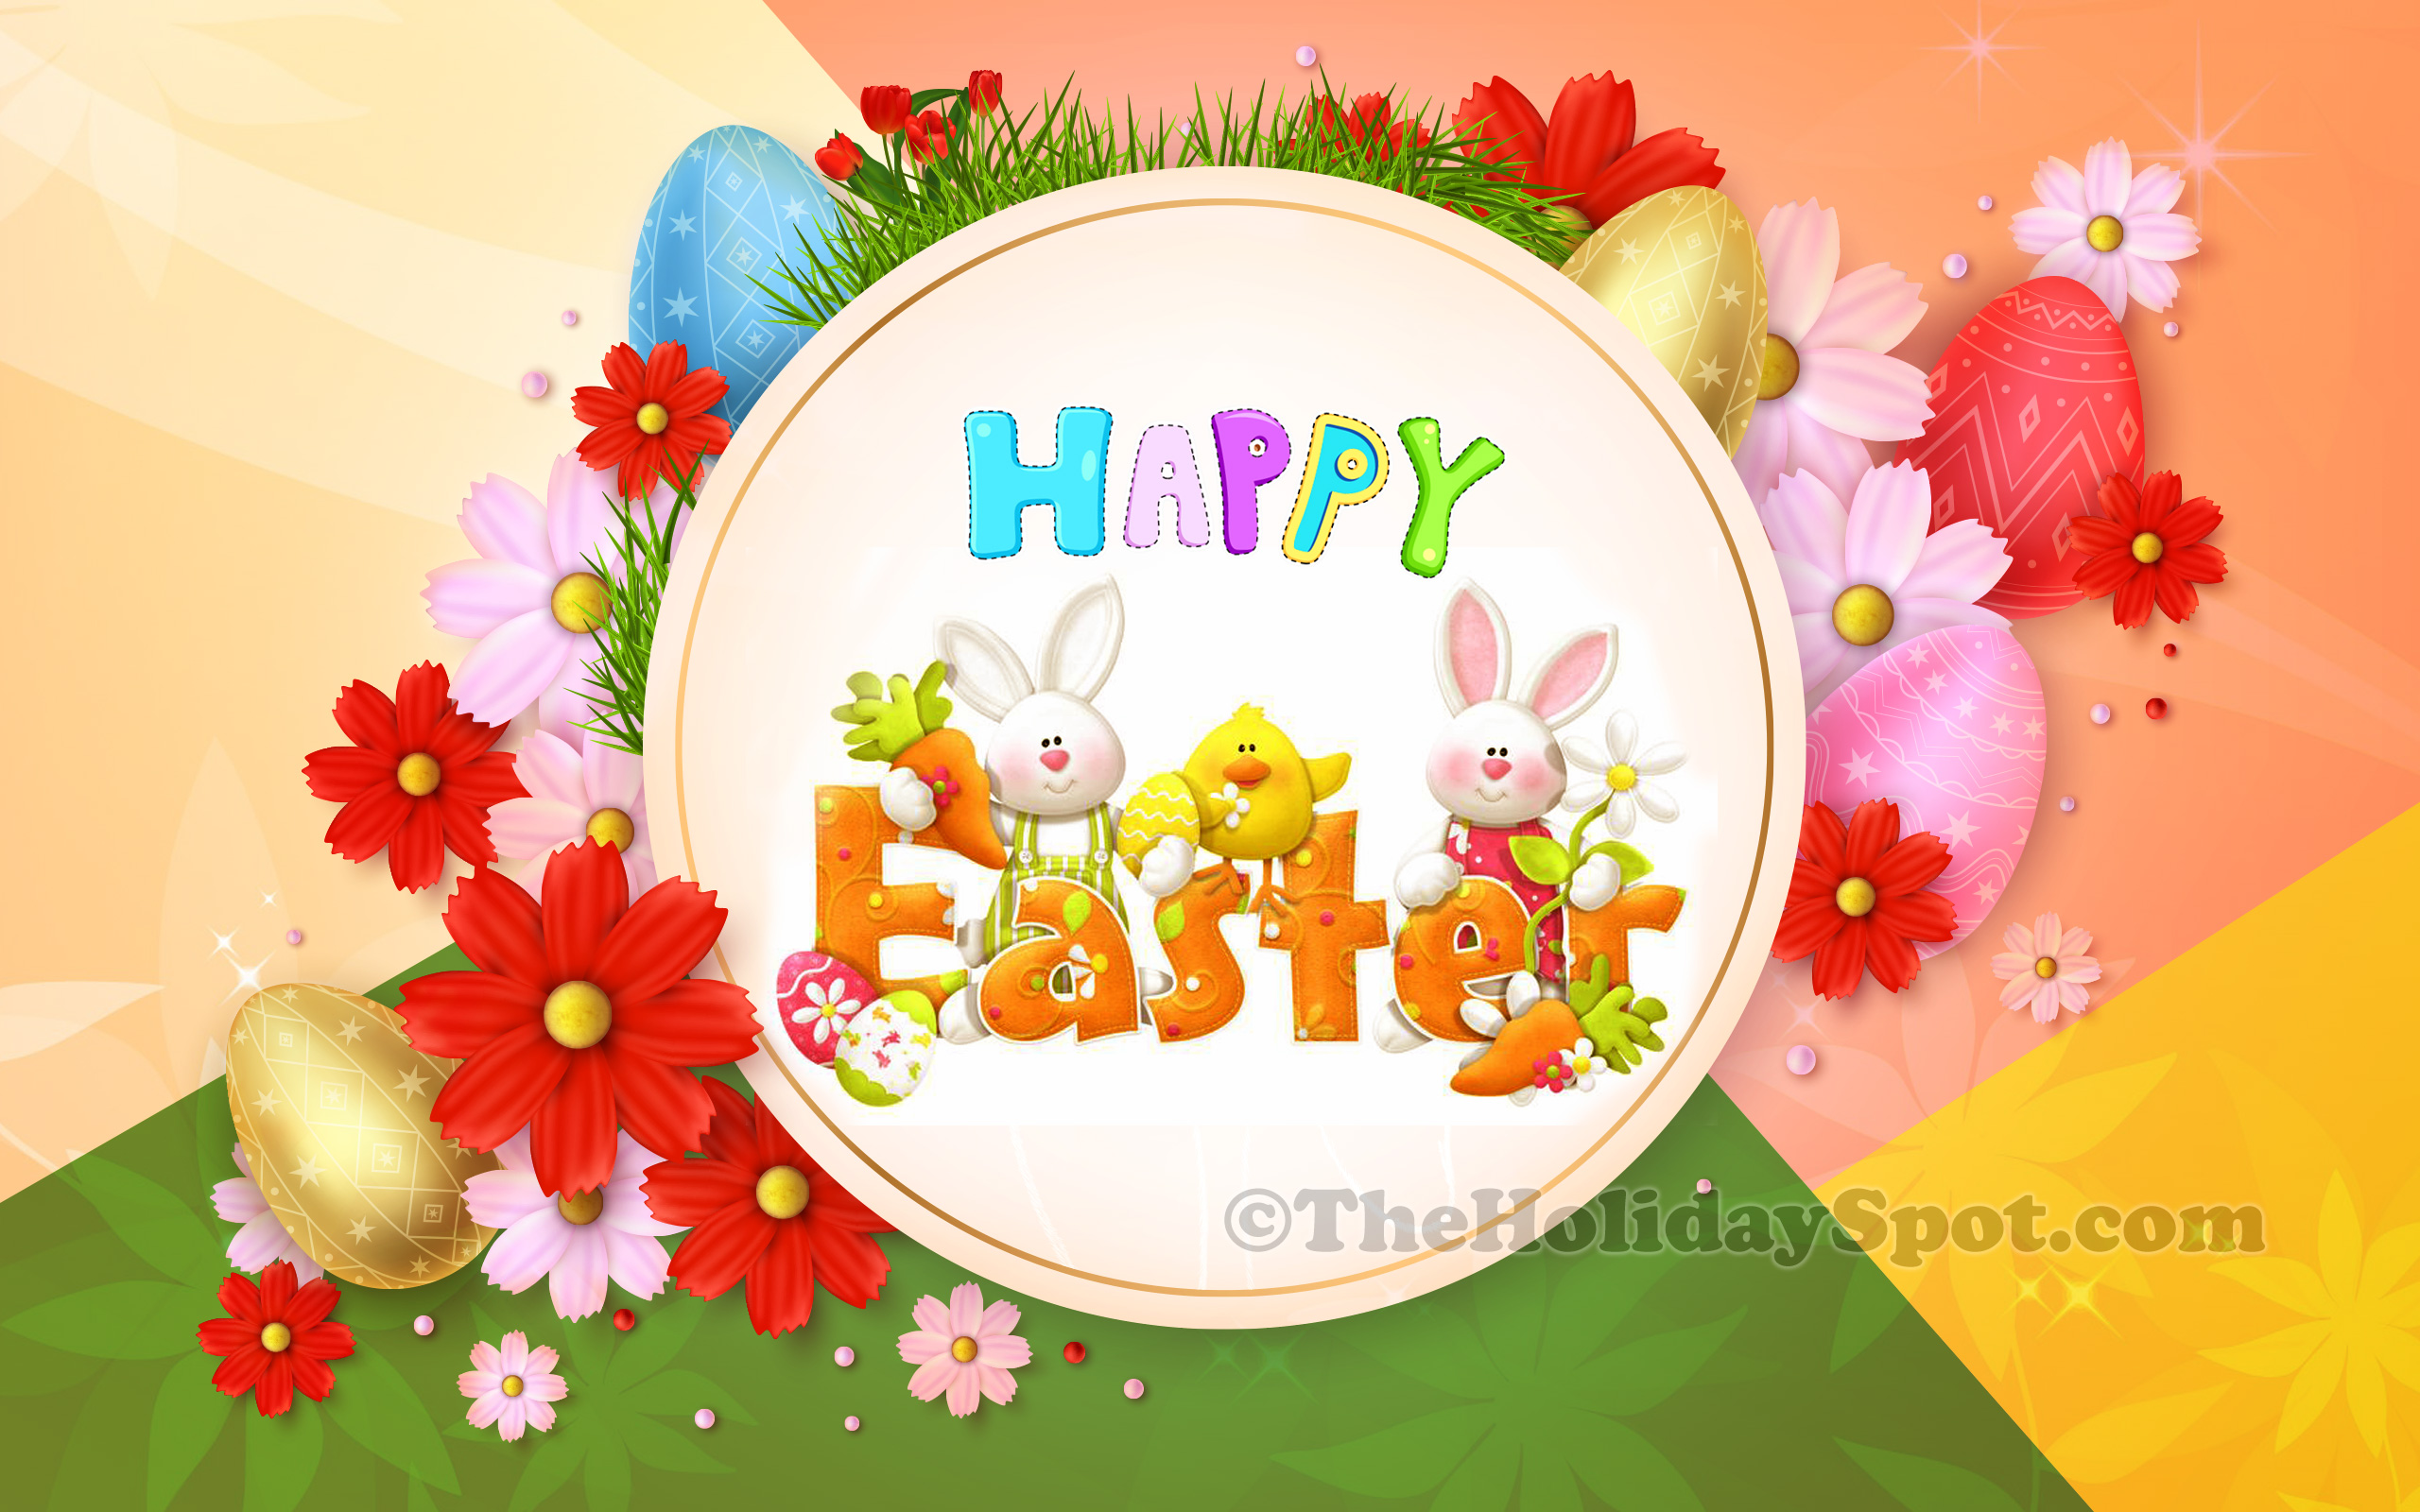 Easter Greetings For Kids Gallery greetings card design simple